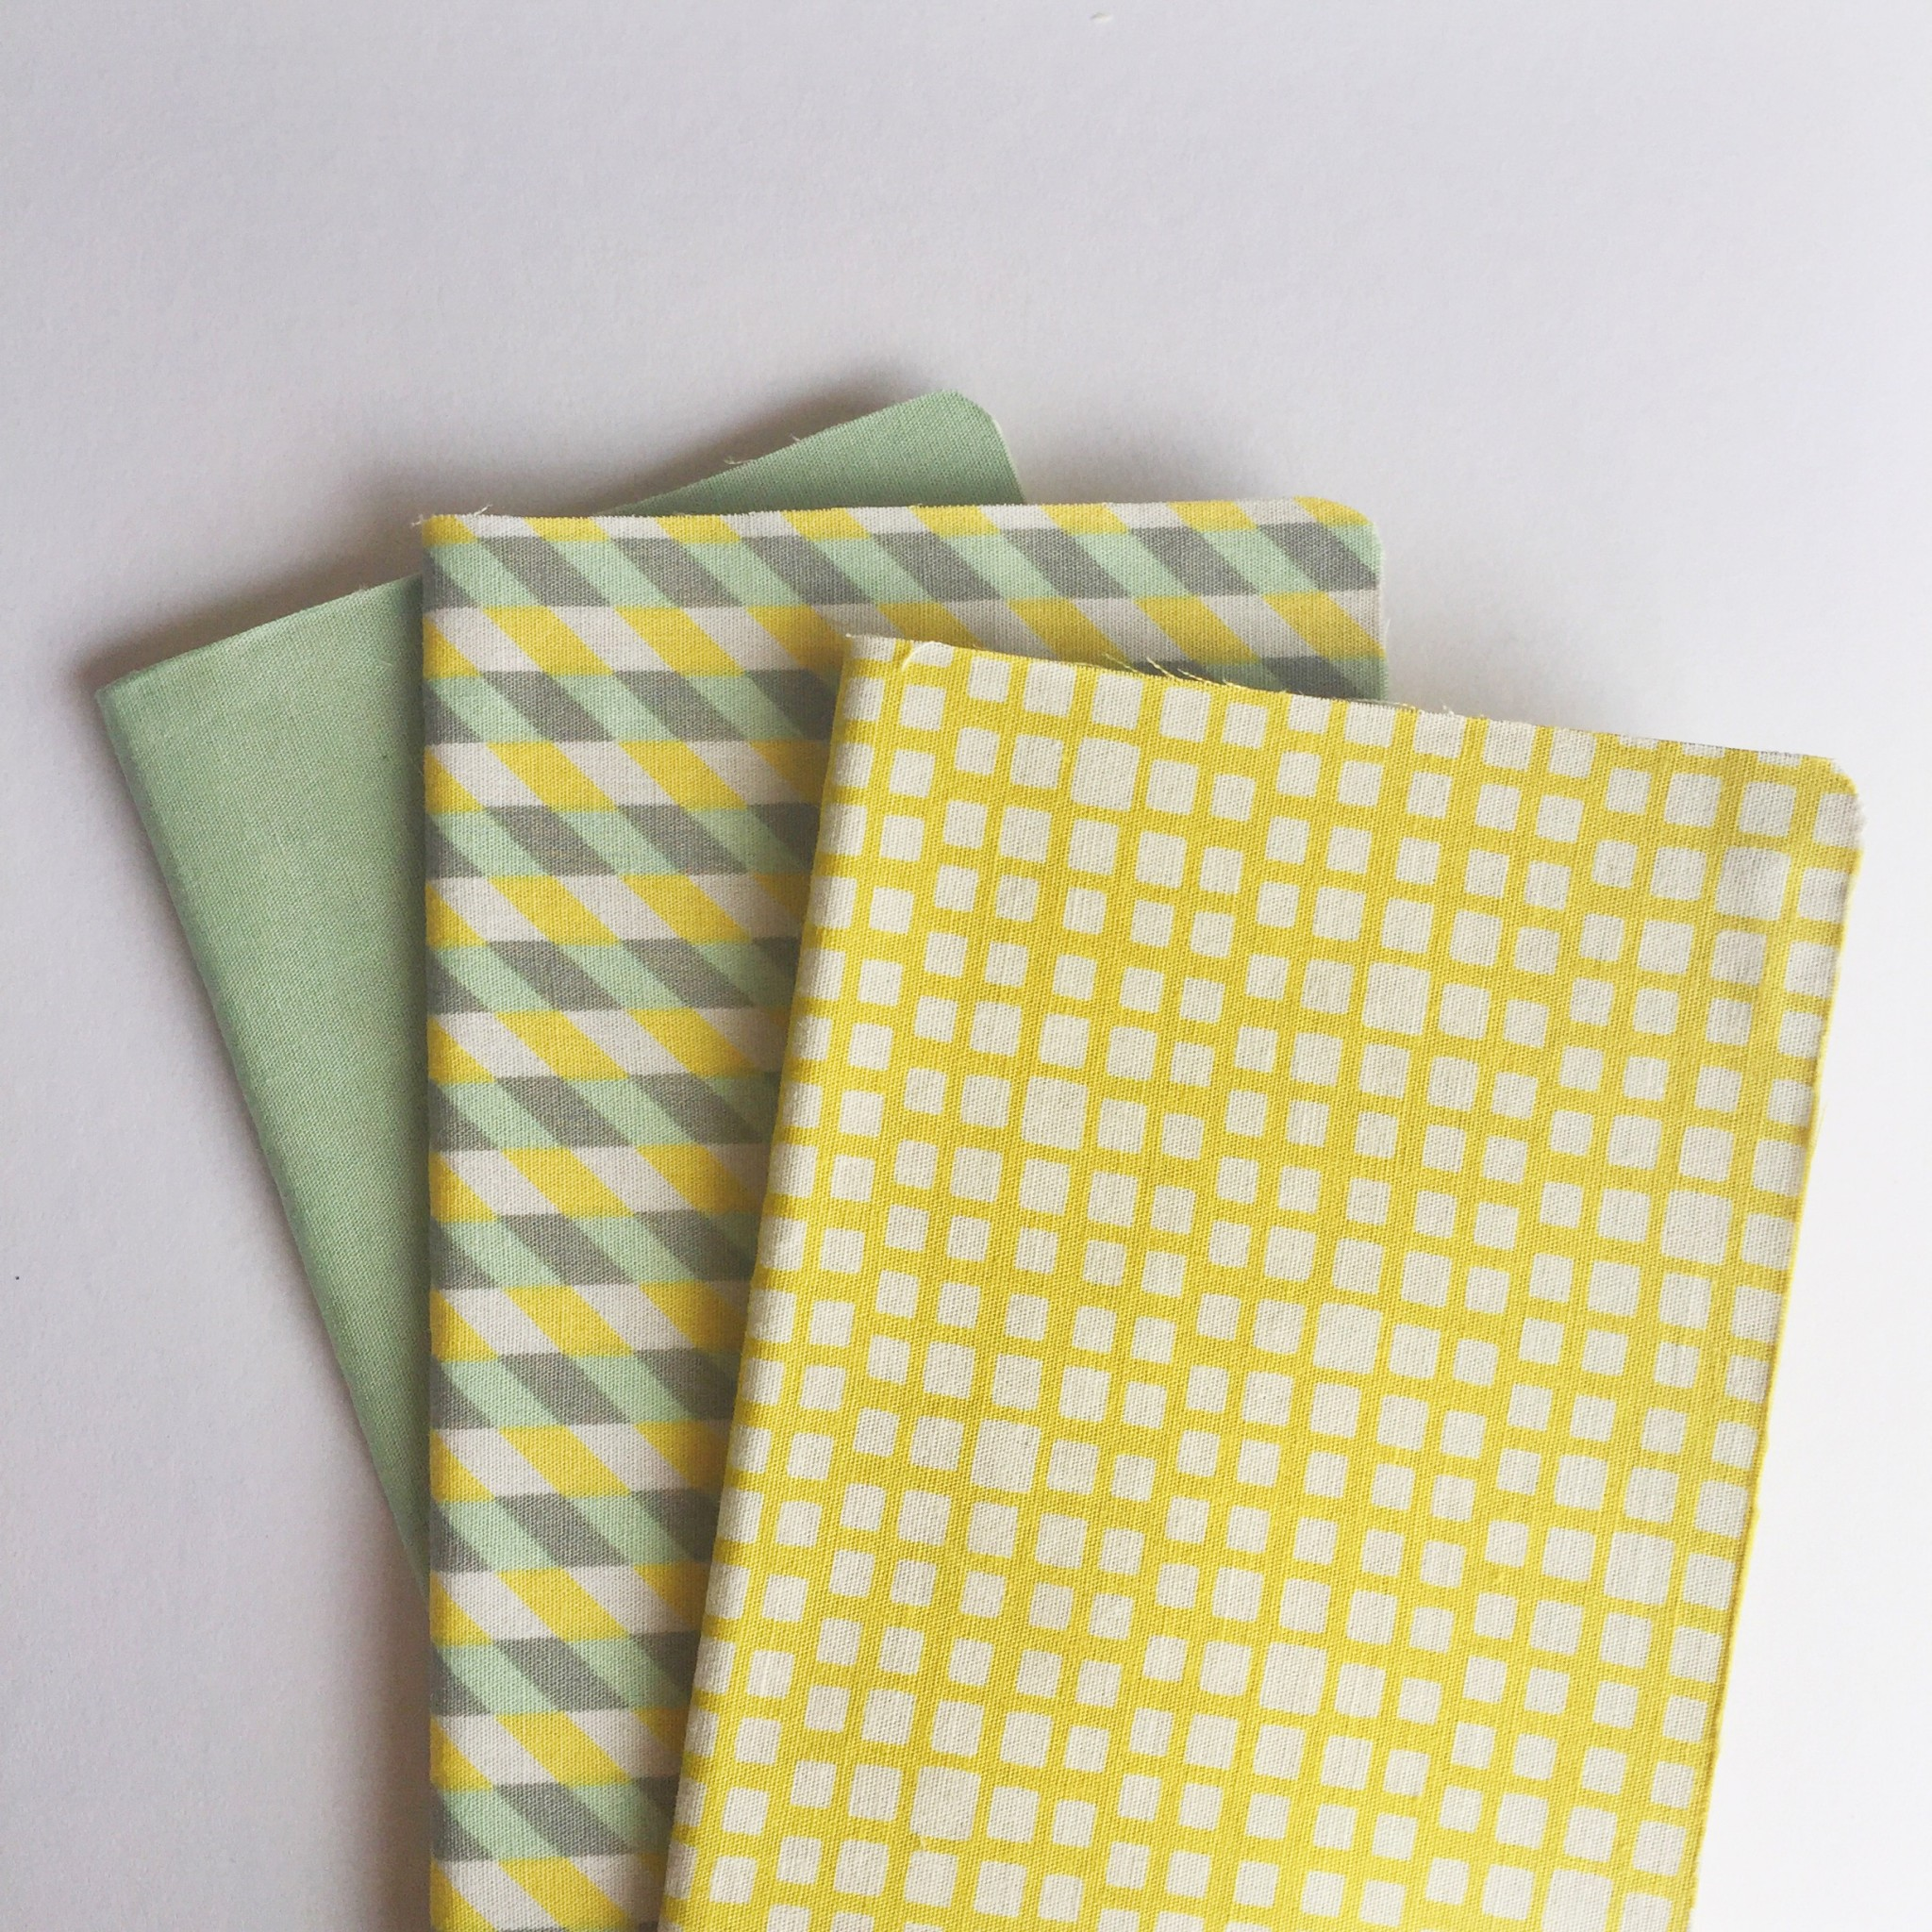 Fabric covered exercise books | Hello! Hooray!